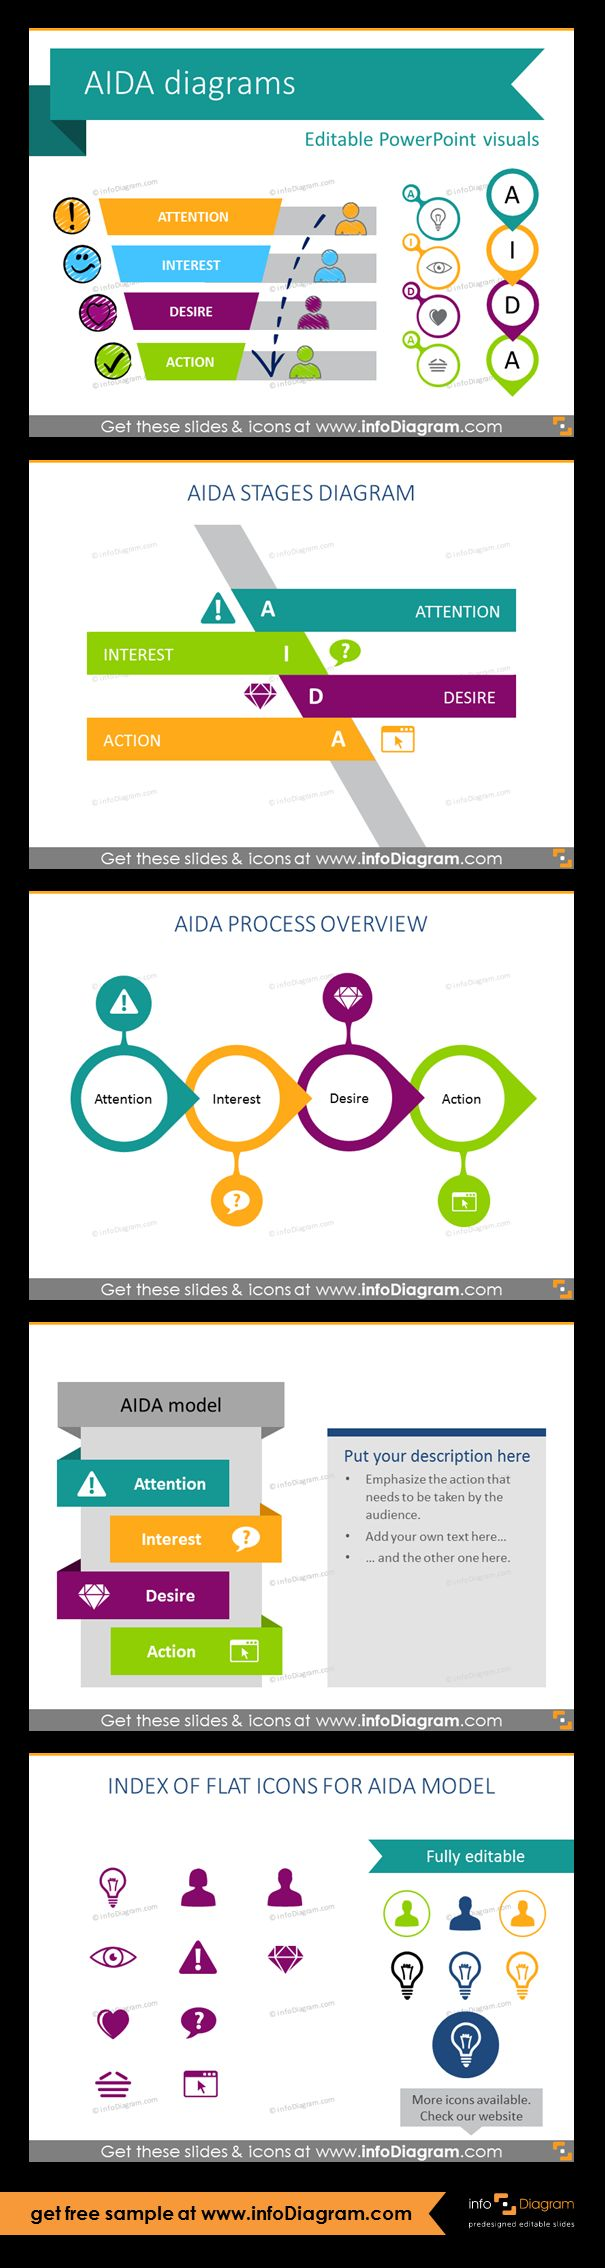 Collection AIDA marketing model diagrams as pre-designed PowerPoint slides. Fully editable vector shapes by using built-in PowerPoint tools (vector format). Colorful AIDA stages diagram with icons of 4 steps. AIDA process overview - ribbon and teardrops design. Index of AIDA icons: bulb, man, woman, eye, exclamation mark, diamond, heart, question mark, customer, mood, check sign.